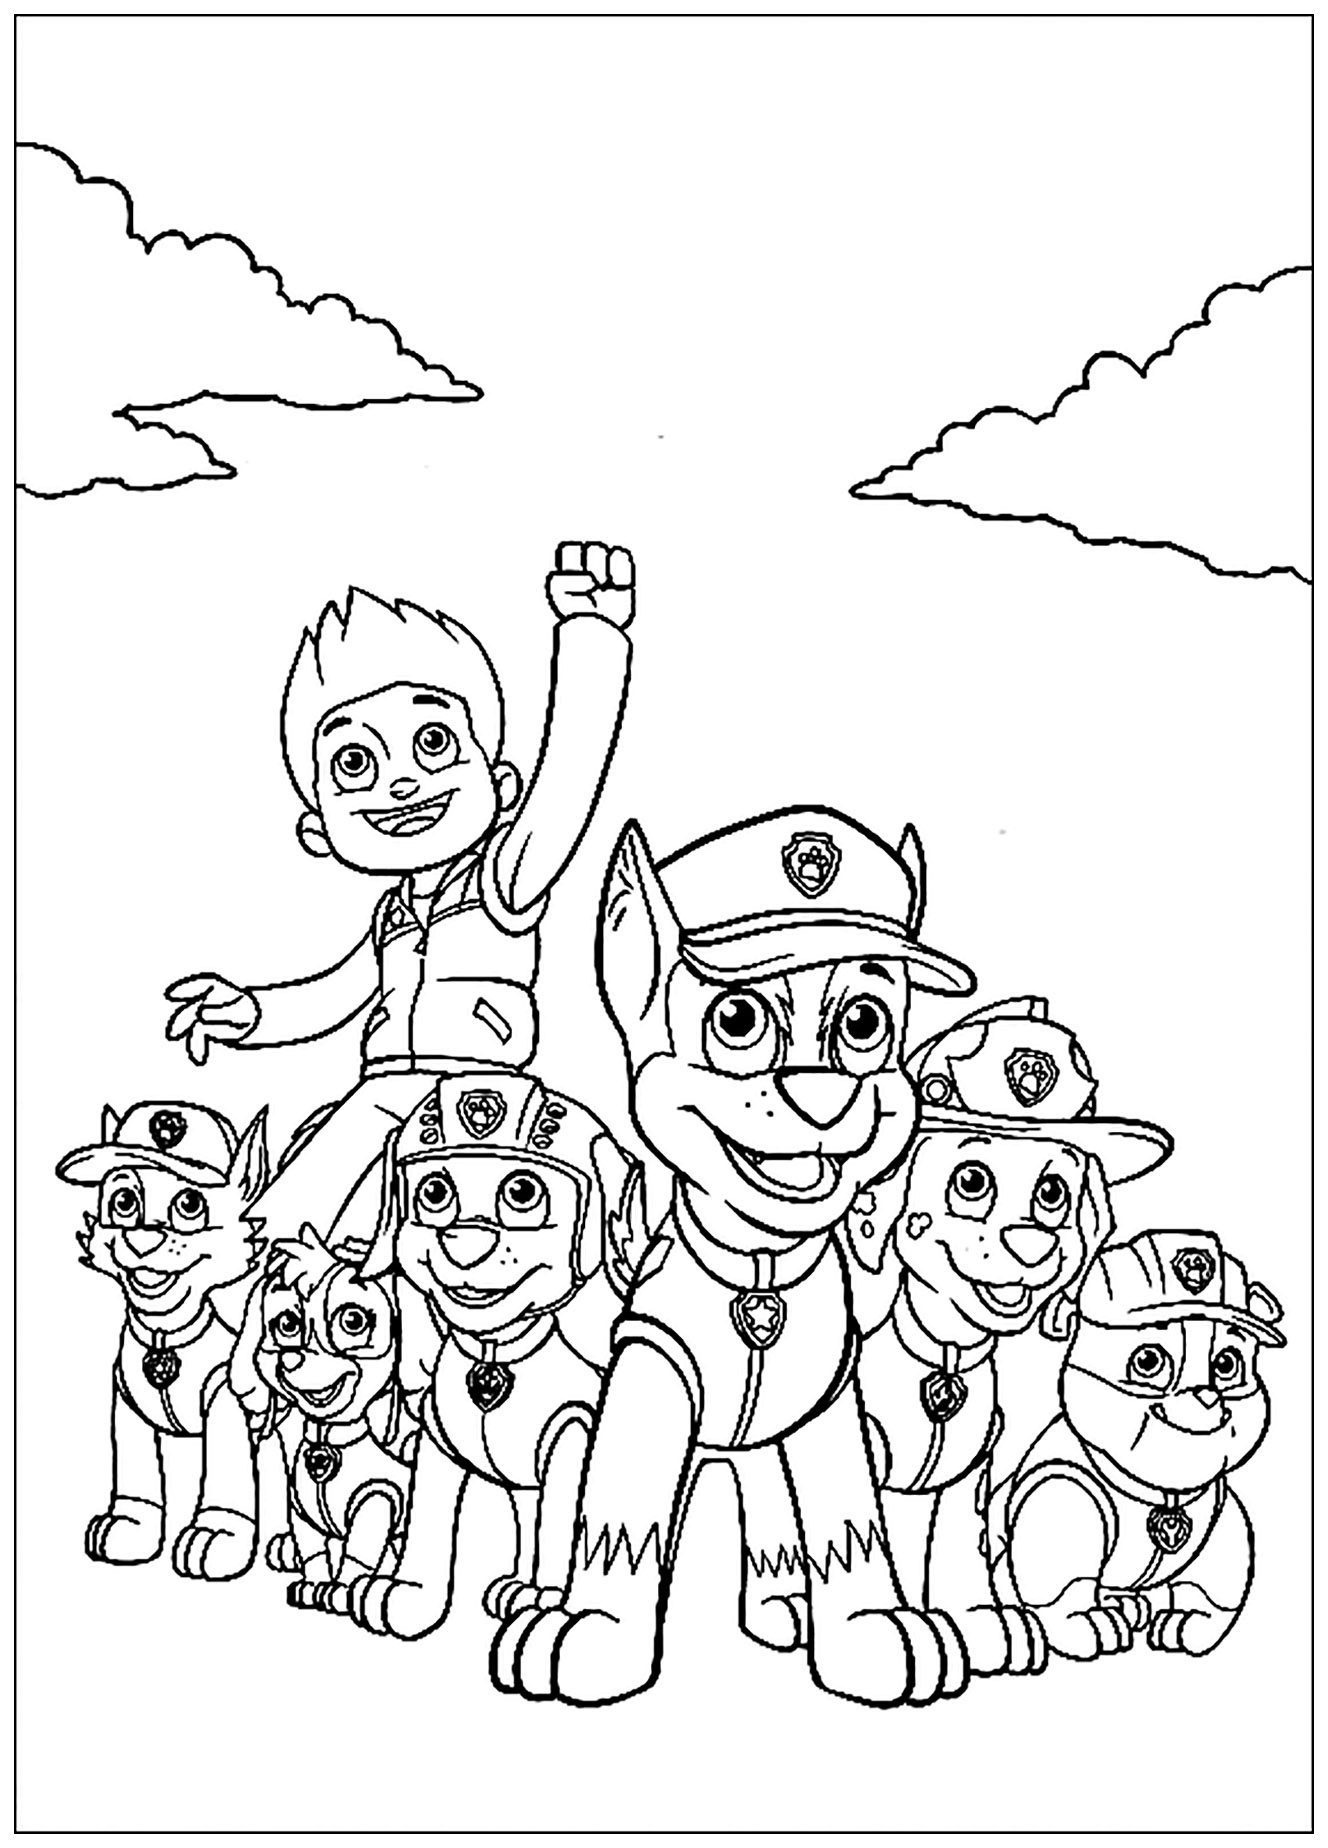 Paw Patrol For Children